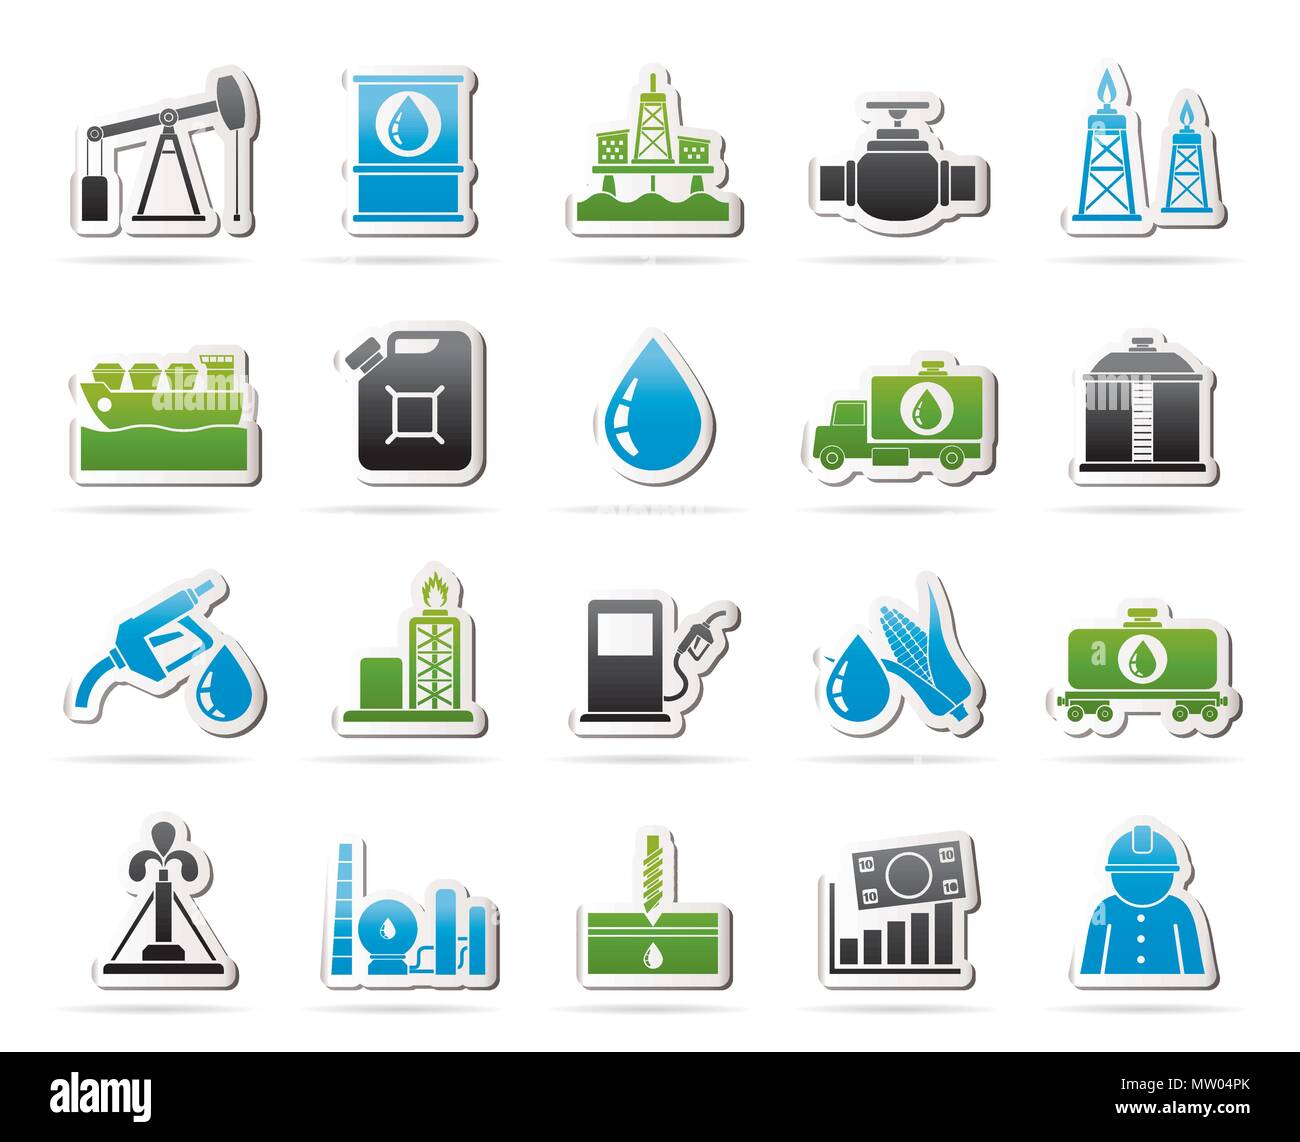 Oil industry, Gas production, transportation and storage icons - vector icon set - Stock Image